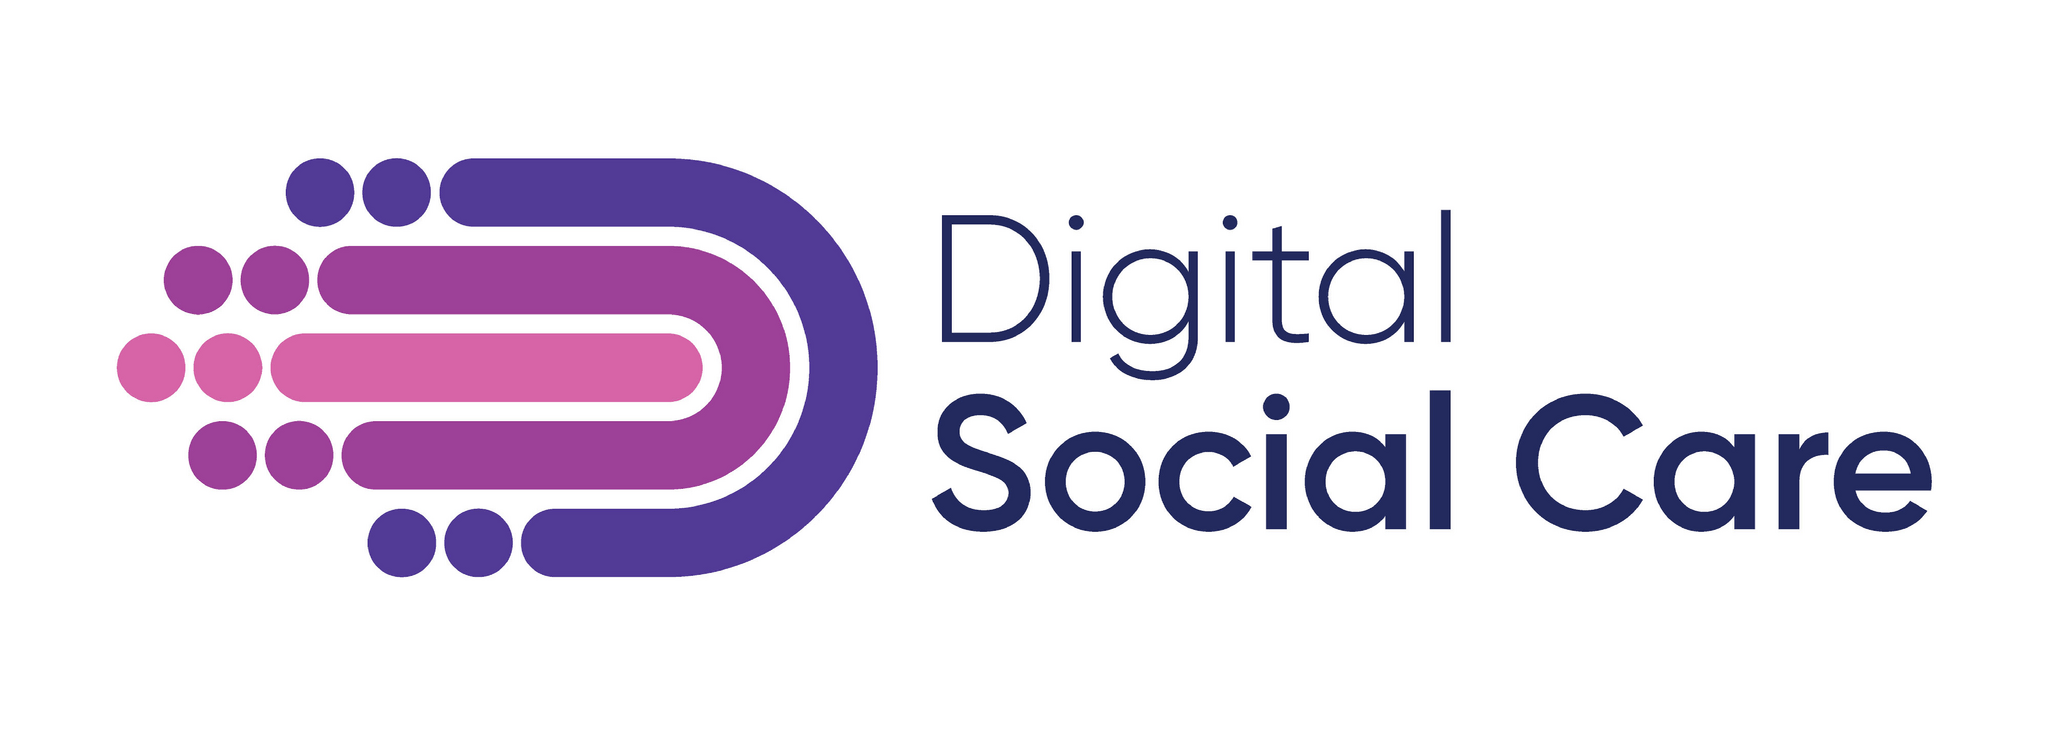 Digital Social Care